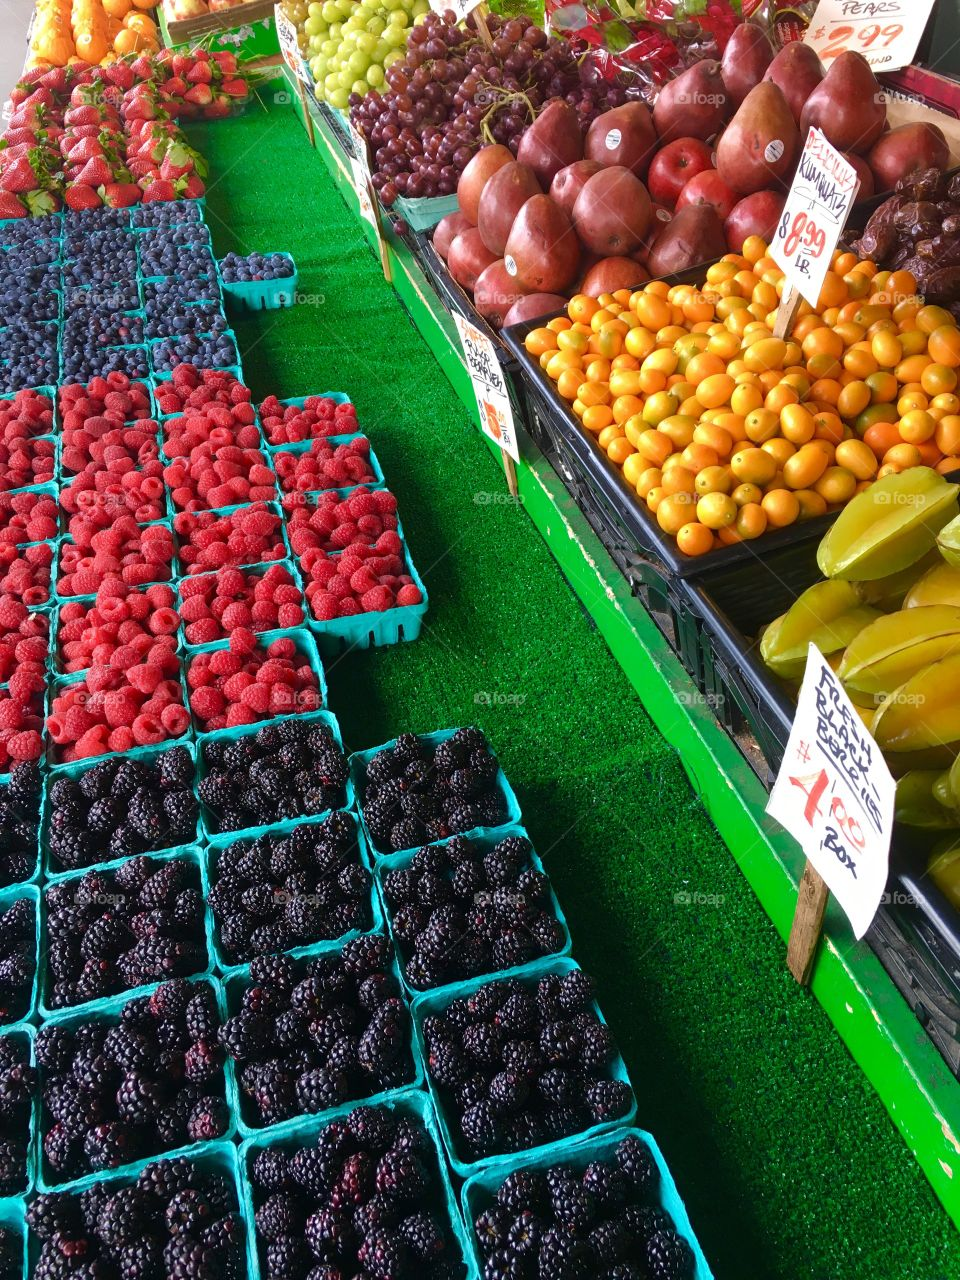 Variety of fruits for sale in market